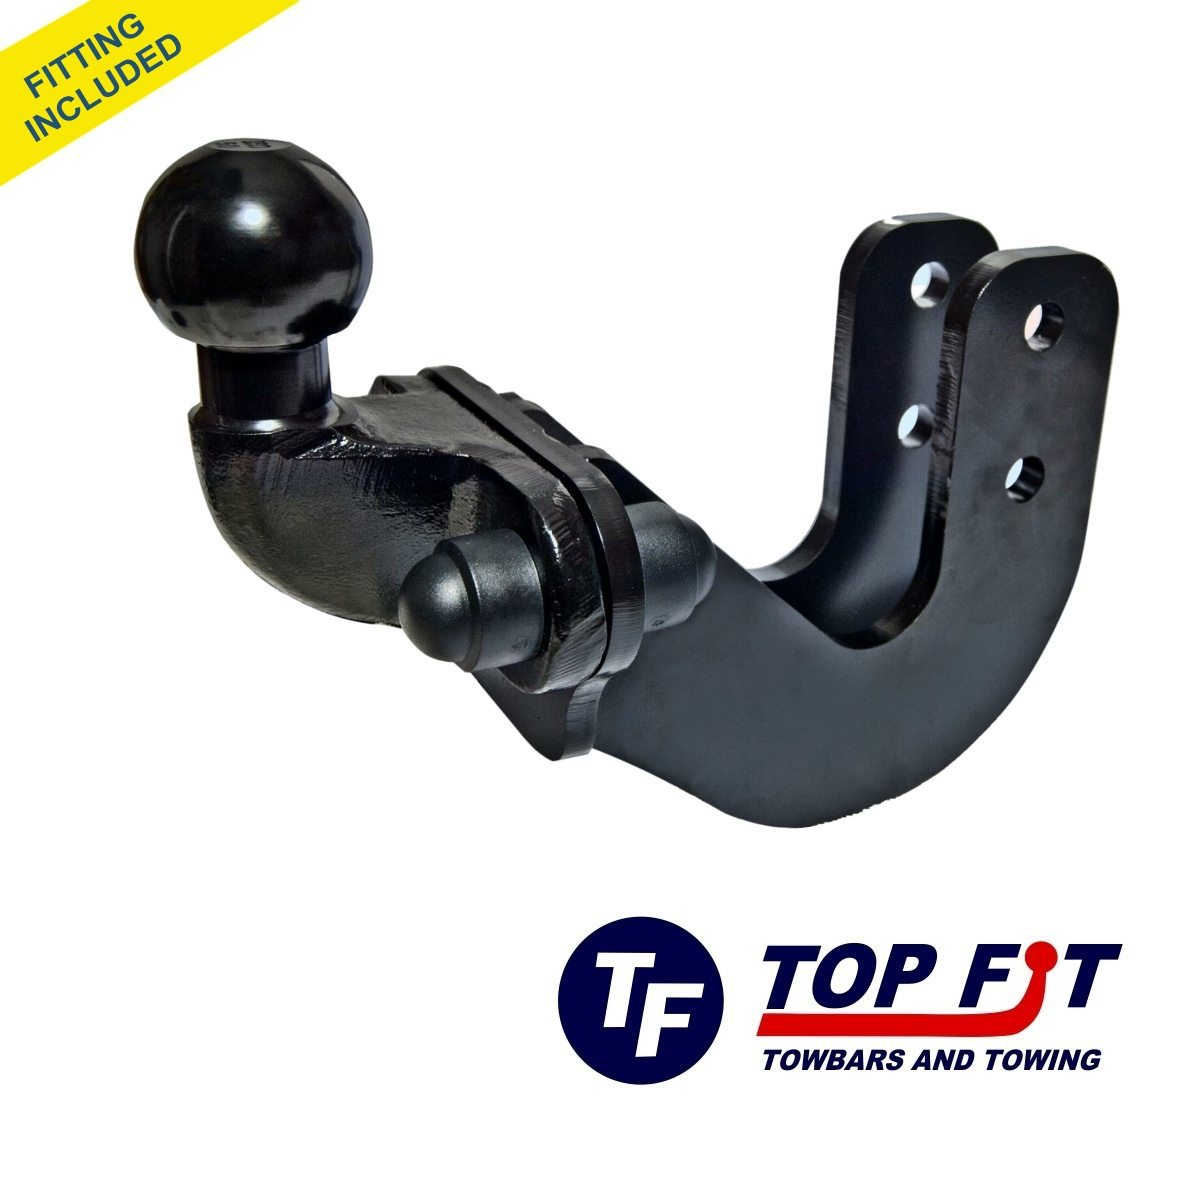 VOLVO S80 SALOON 1998 TO 2006 FLANGE TOWBAR